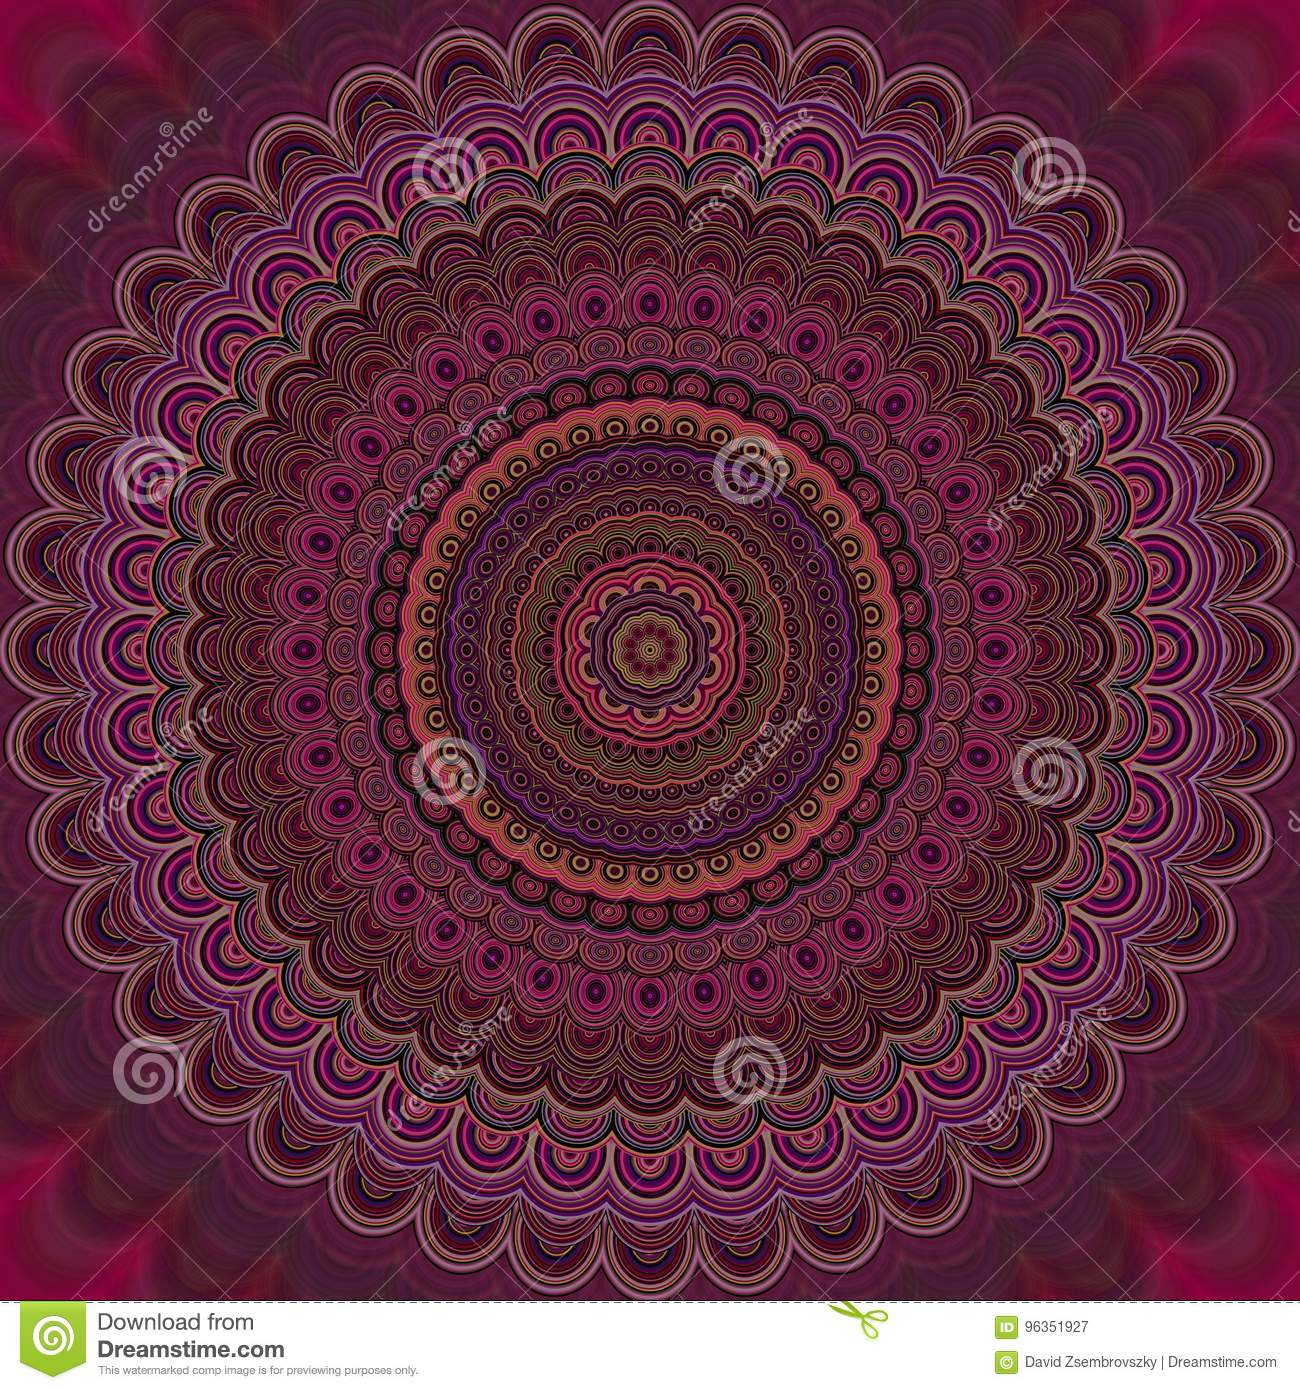 Psychedelic mandala fractal background - round vector pattern design from concentric ellipses